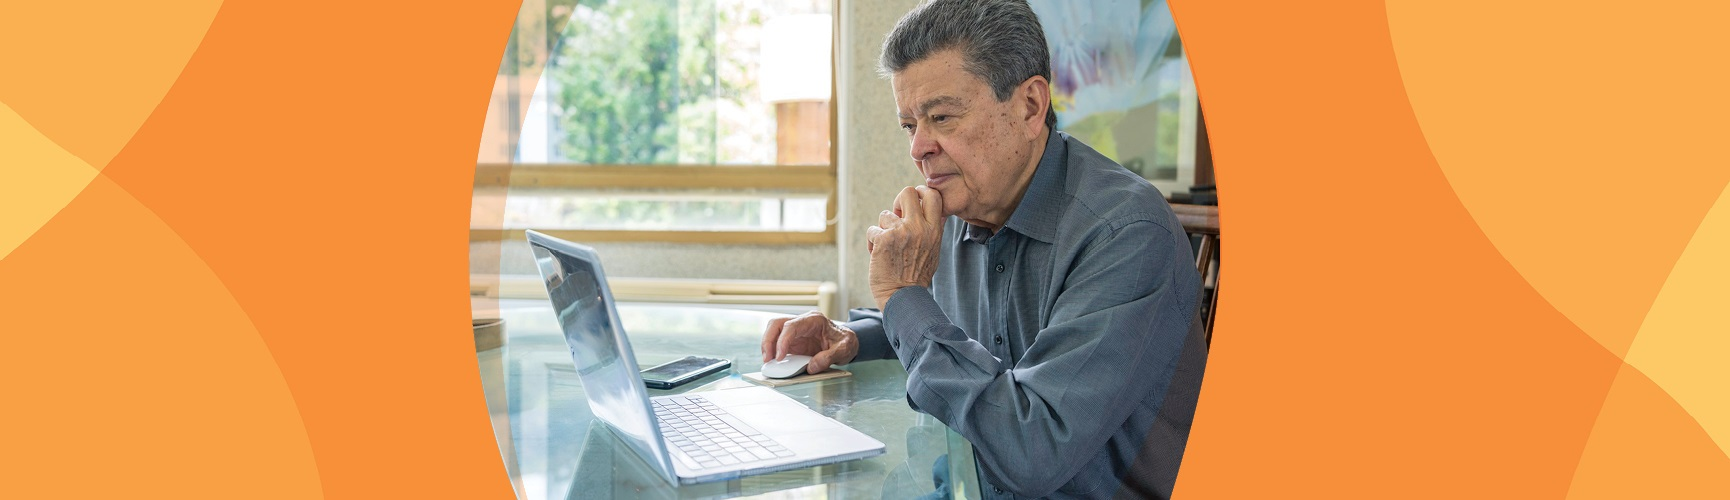 Older adults uses a computer to access information